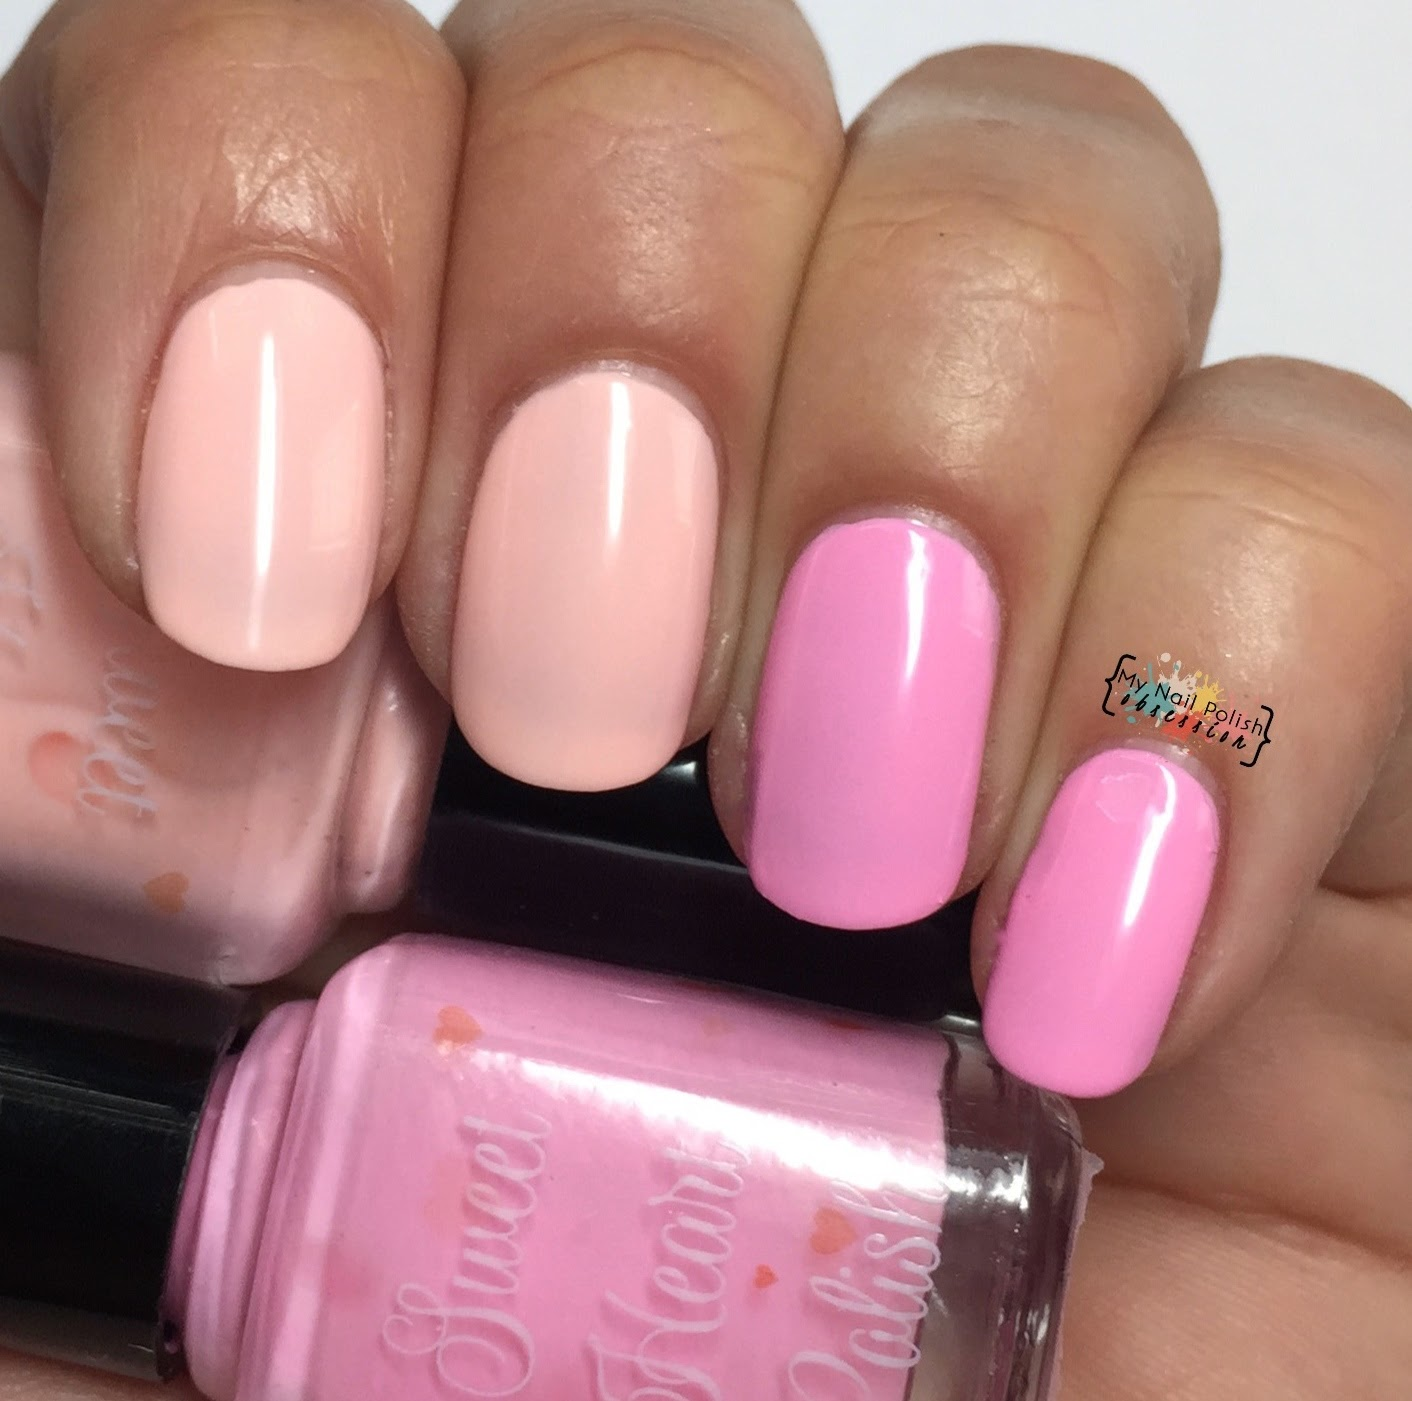 Sweet Heart Polish Peach Cobbler vs Te Amo